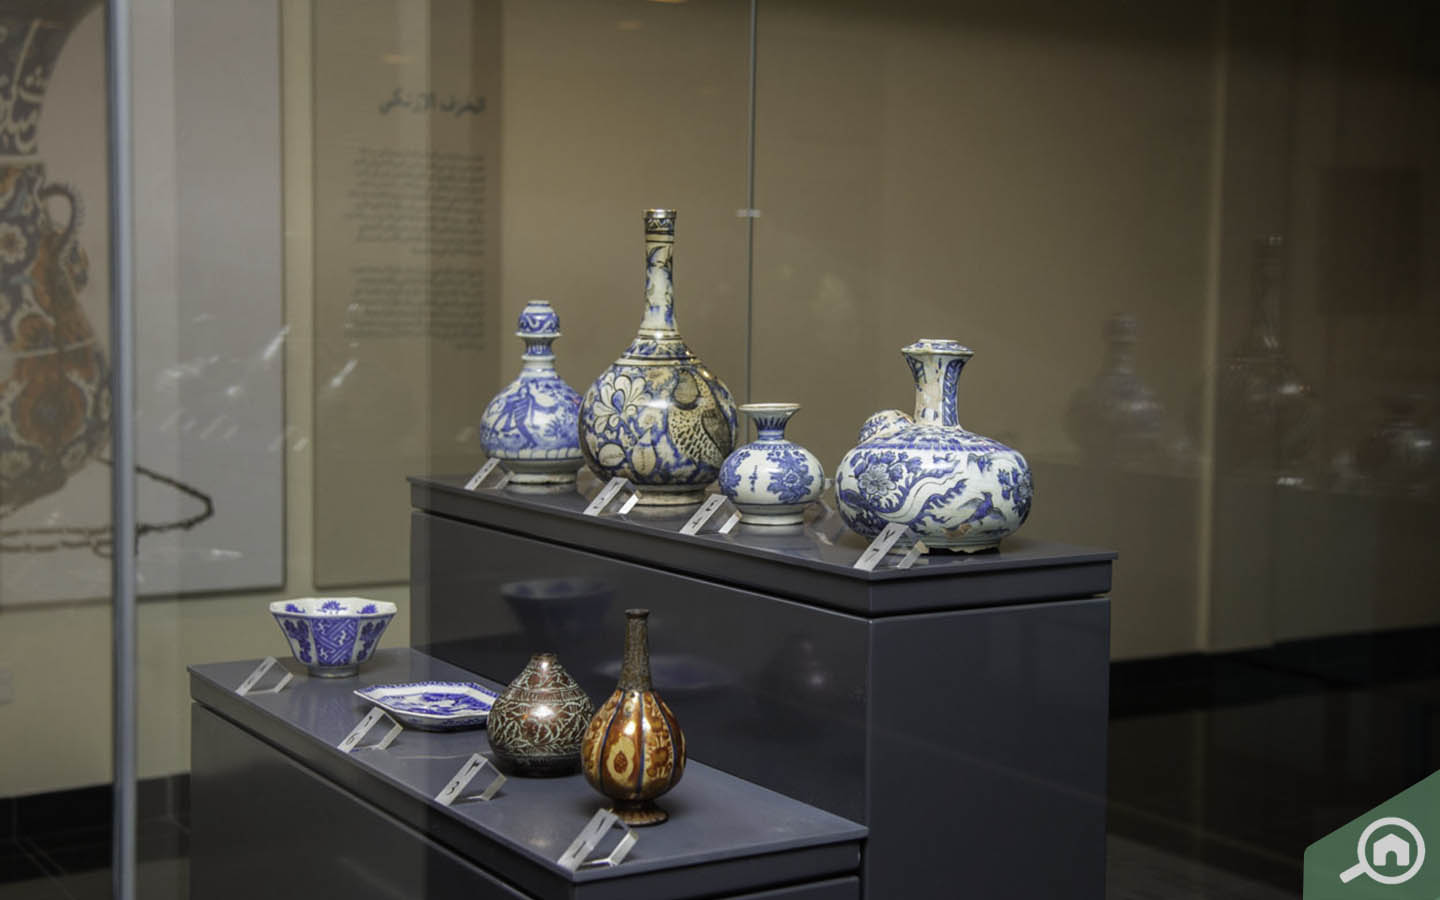 Display of ceramic art at the Gallery 3 of the museum